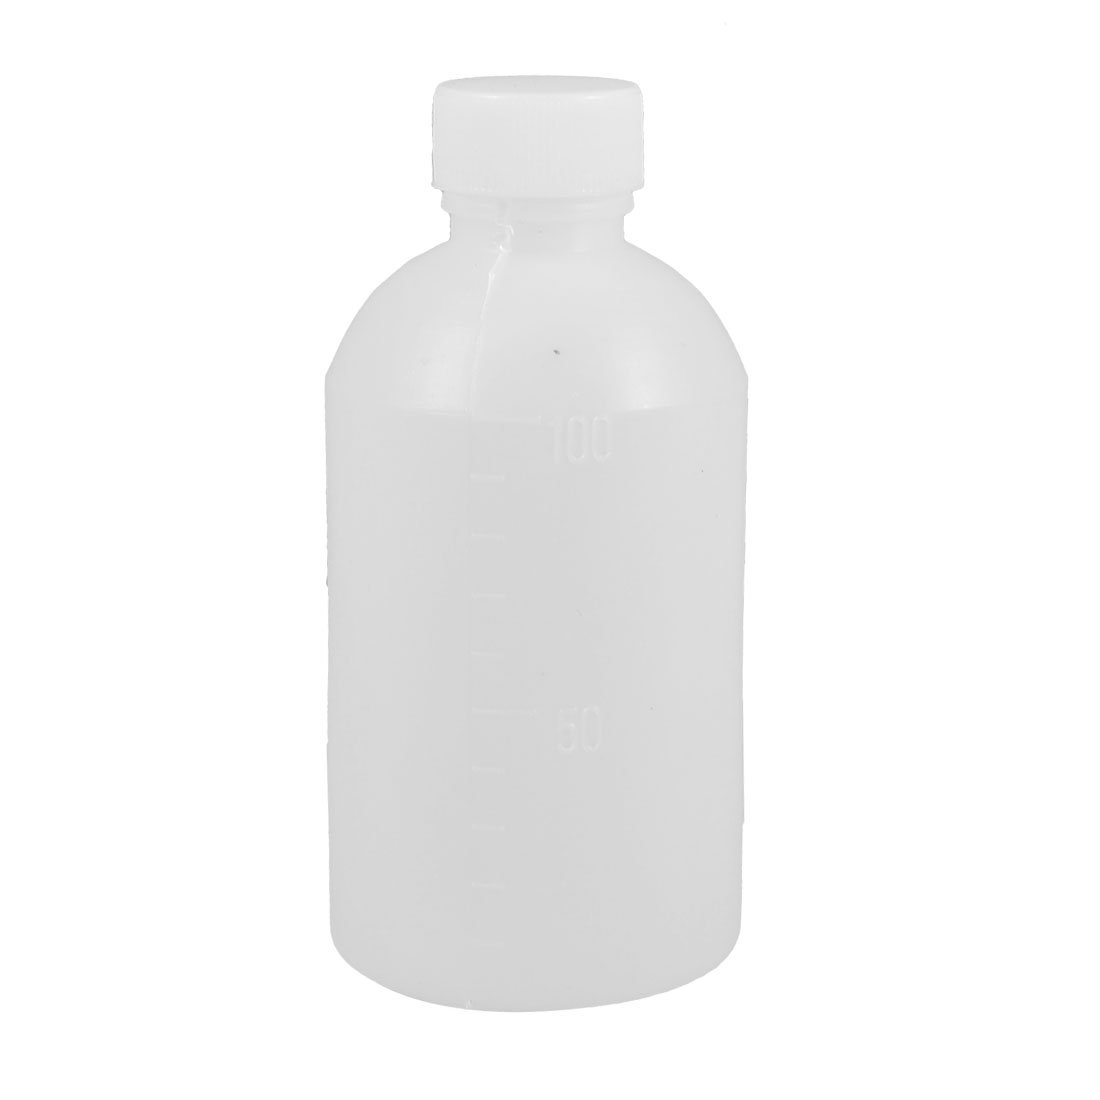 uxcell 100mL Capacity Laboratory Graduated White Plastic Carboy Bottle